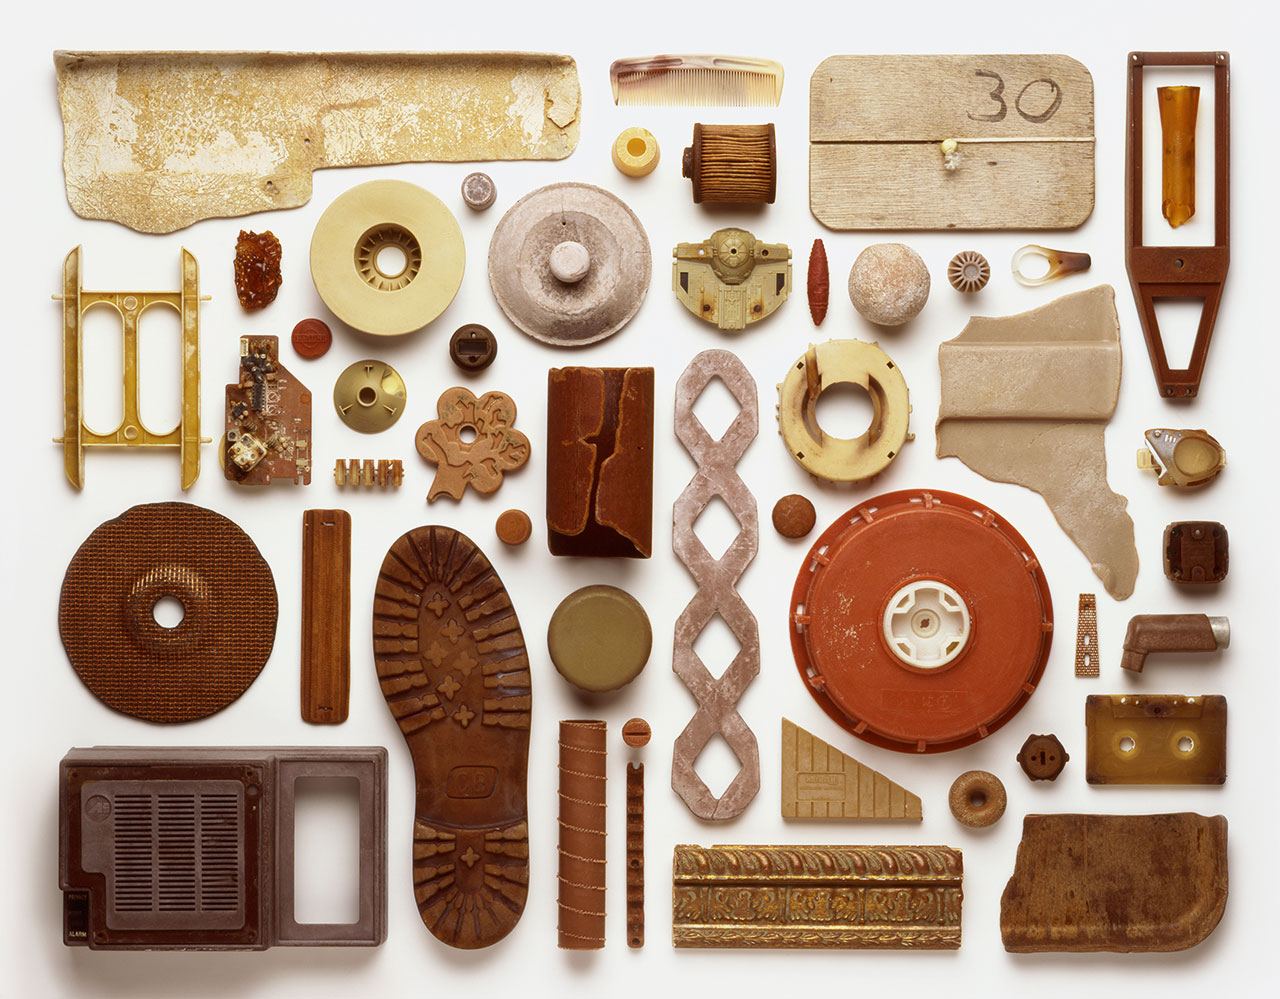 Stuart Haygarth,Strand(components), 2012. Made from man-made objects washed ashore and collected by the artist. Commissioned by University College London Hospitals for permanent display at the new UCH Macmillan Cancer Centre in London.